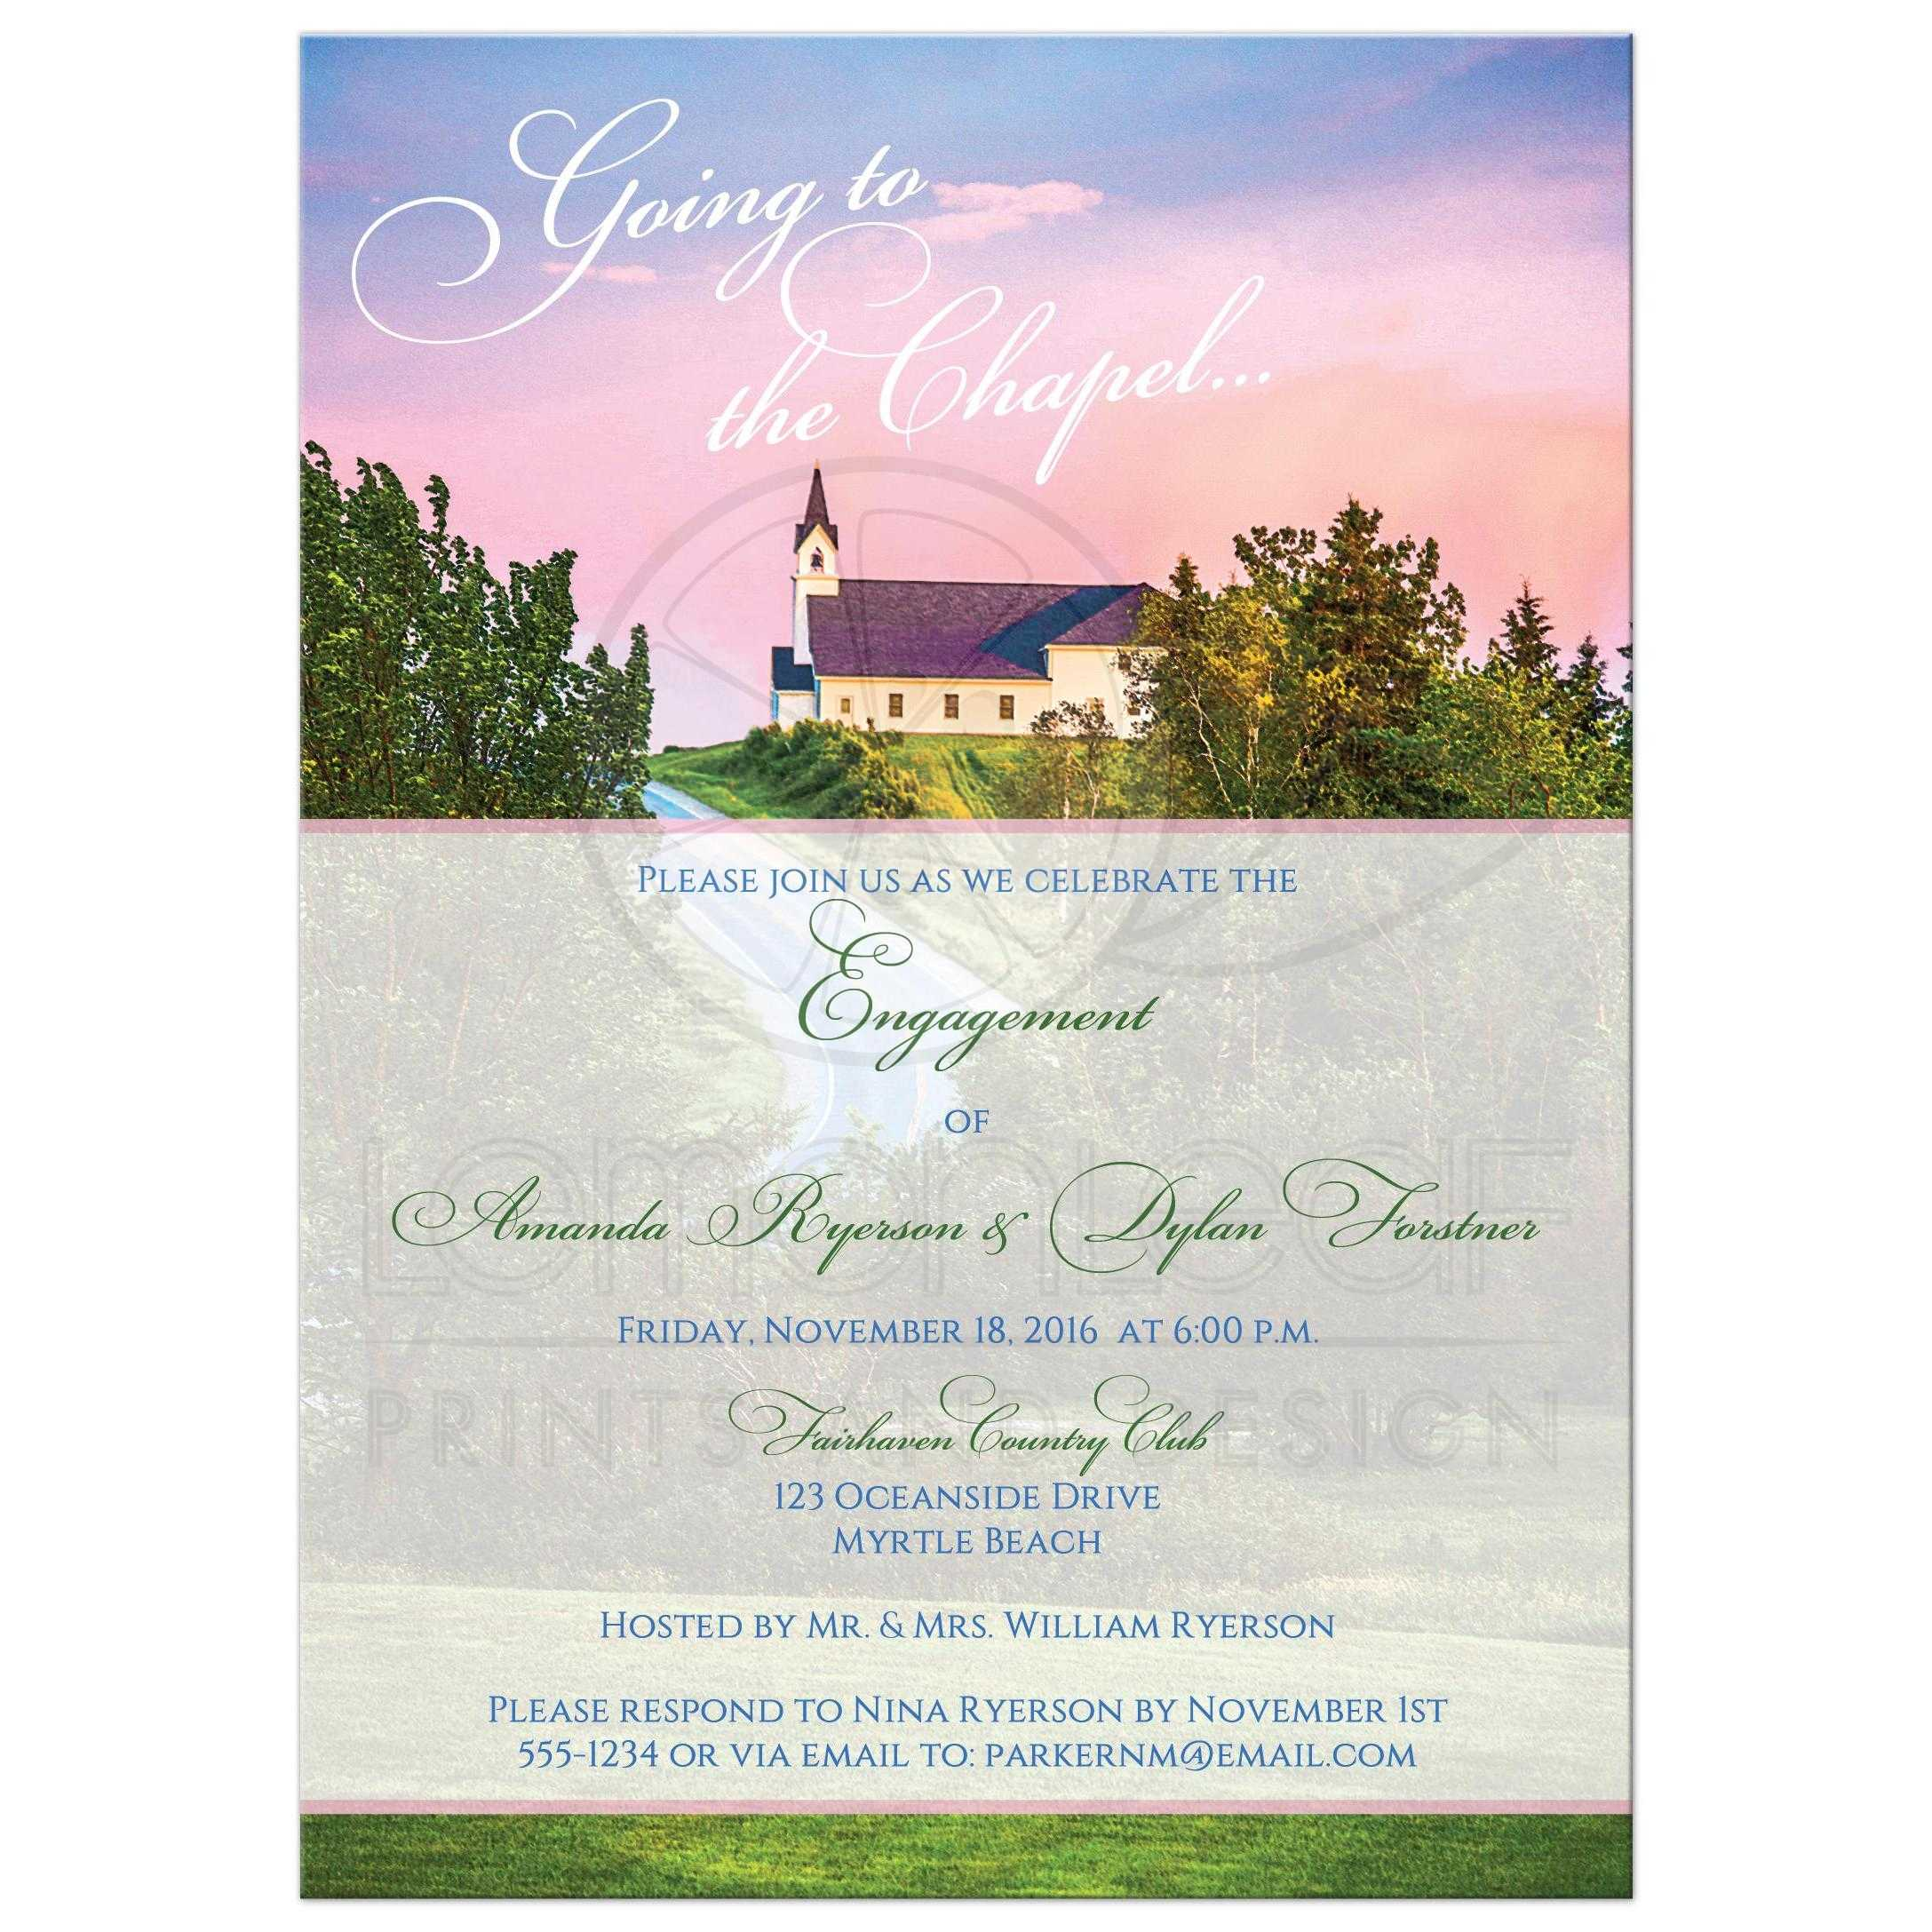 Engagement Party Invitation | Going to the Chapel